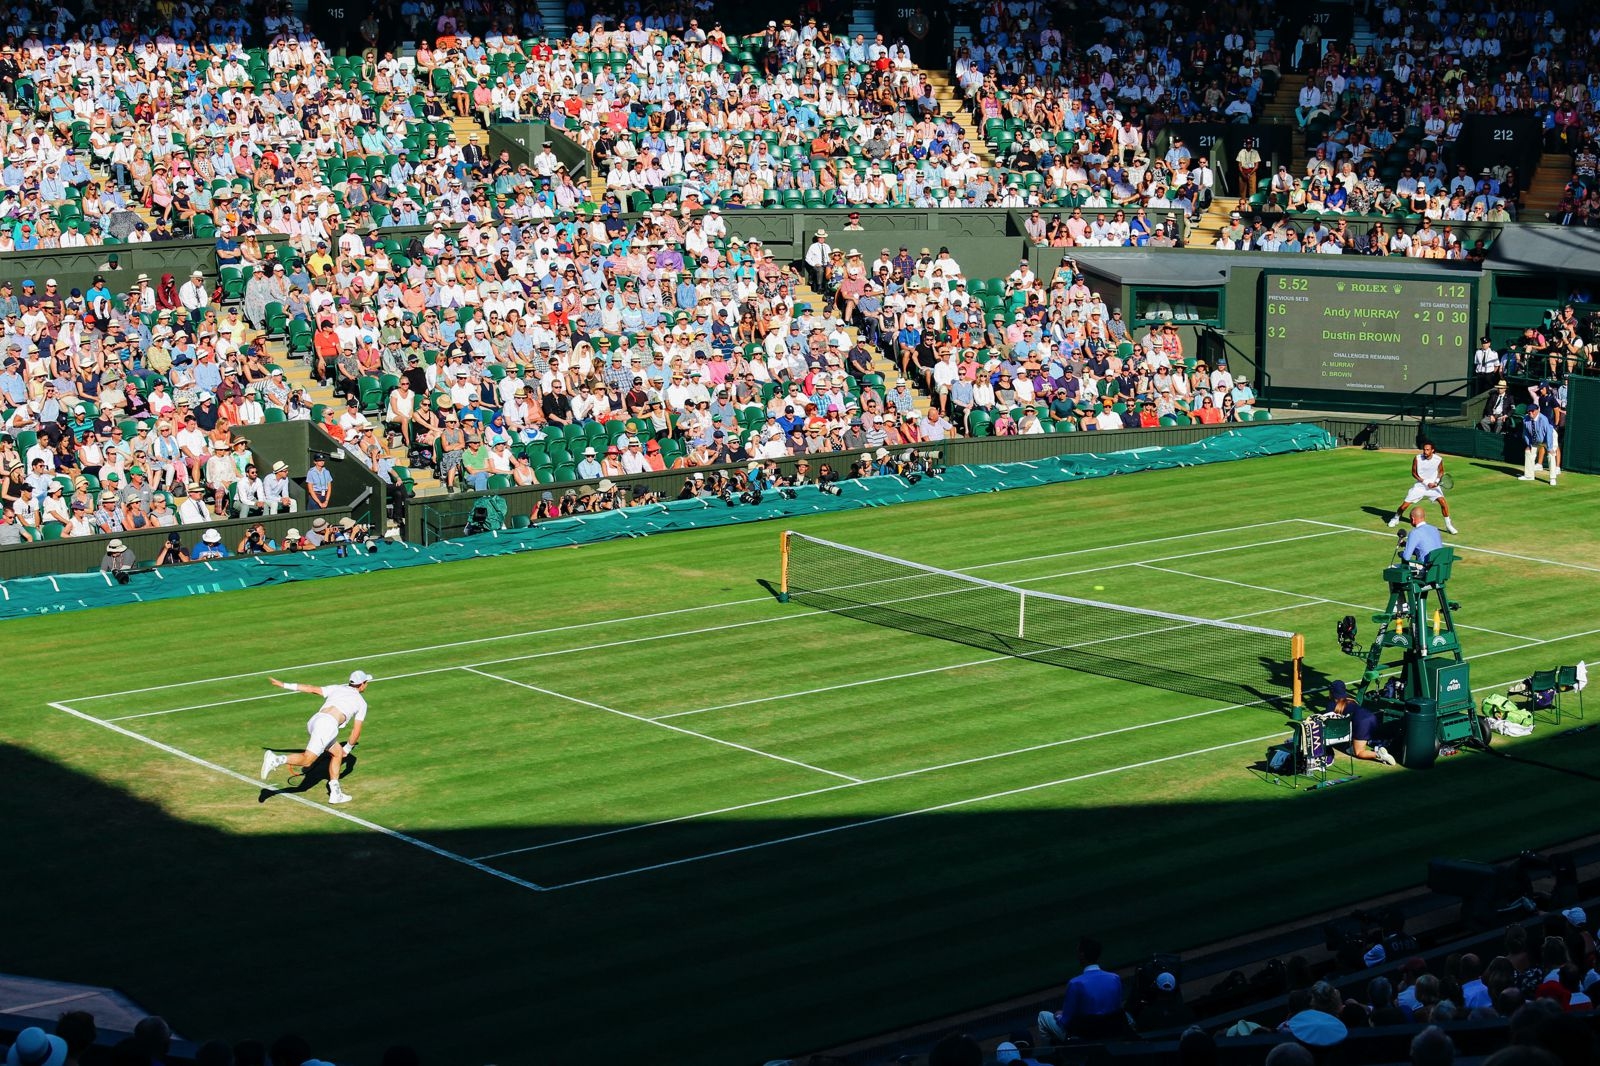 A DAY IN WIMBLEDON... || Watching Andy Murray, Rafael Nadal and Johanna Konta's Tennis Matches (27)